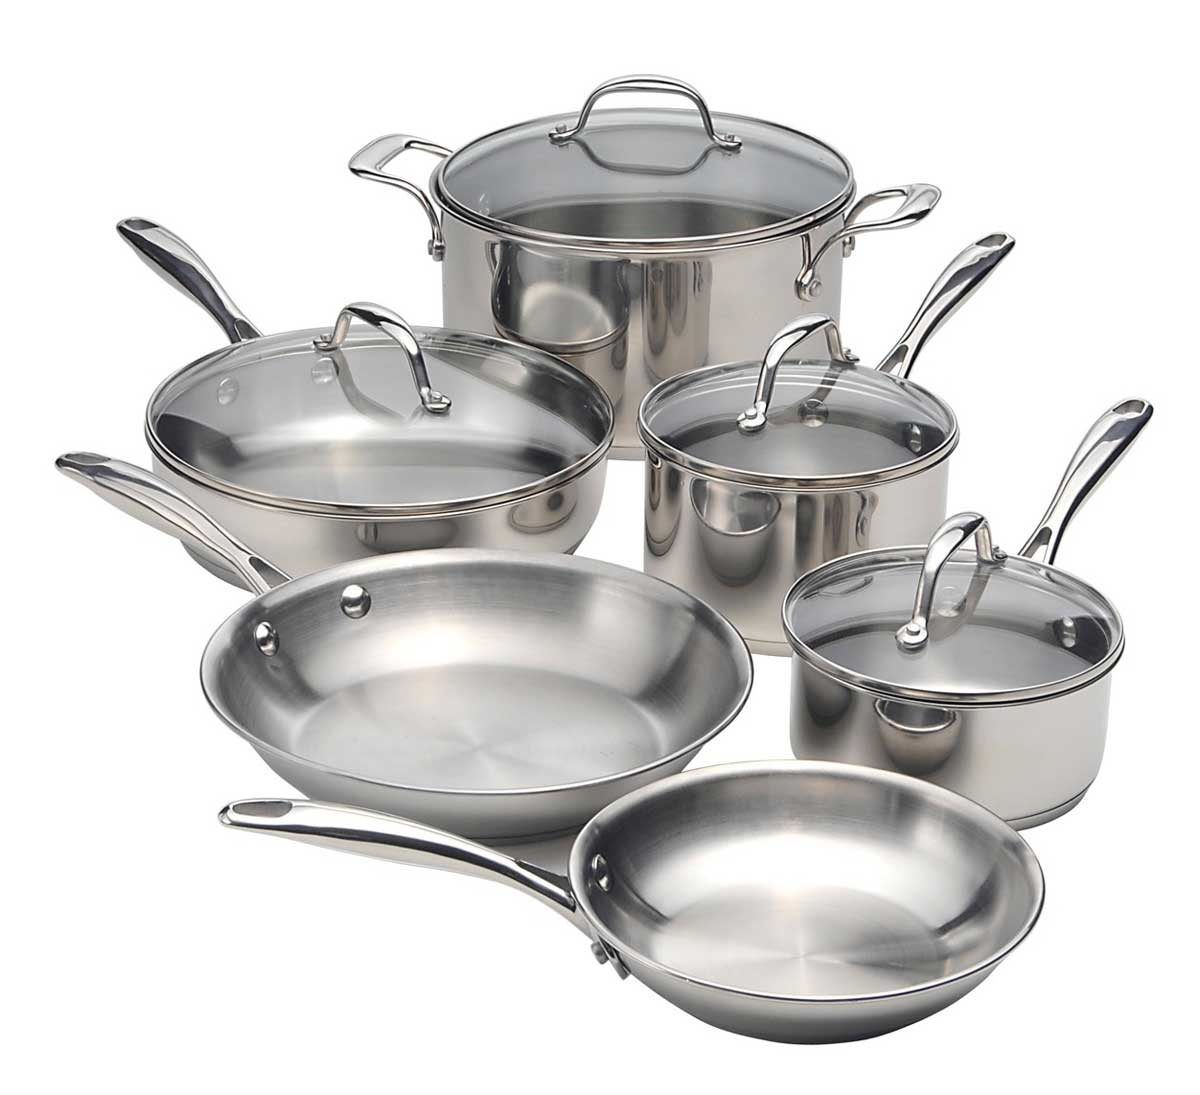 wonderful Indian Kitchen Appliances #1: Care Tips - Stainless steel is all the rage for kitchen appliances and  decor, and is still a prime choice for high-end cookware. But a wet rag  wonu0027t always ...